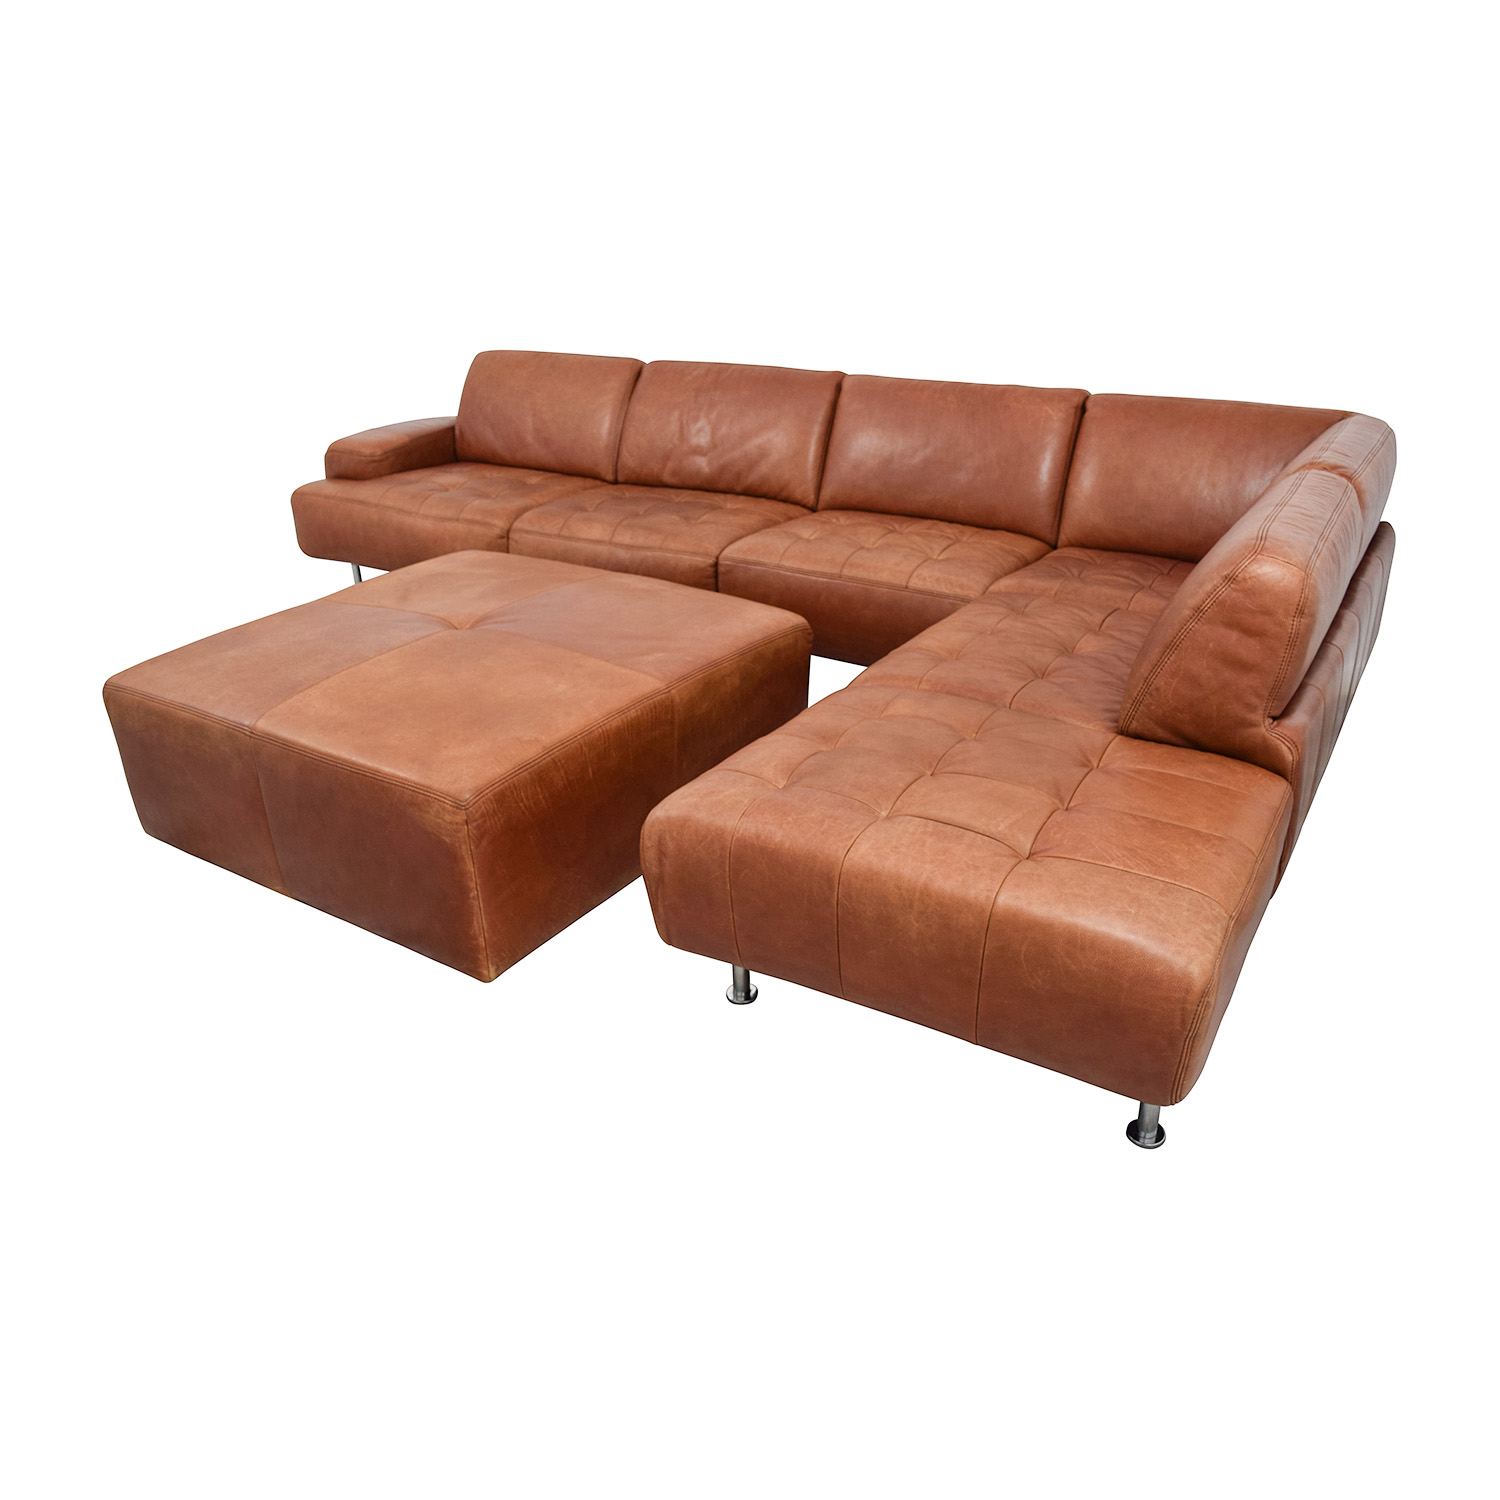 W. Schillig W. Schillig Leather Sectional with Ottoman coupon